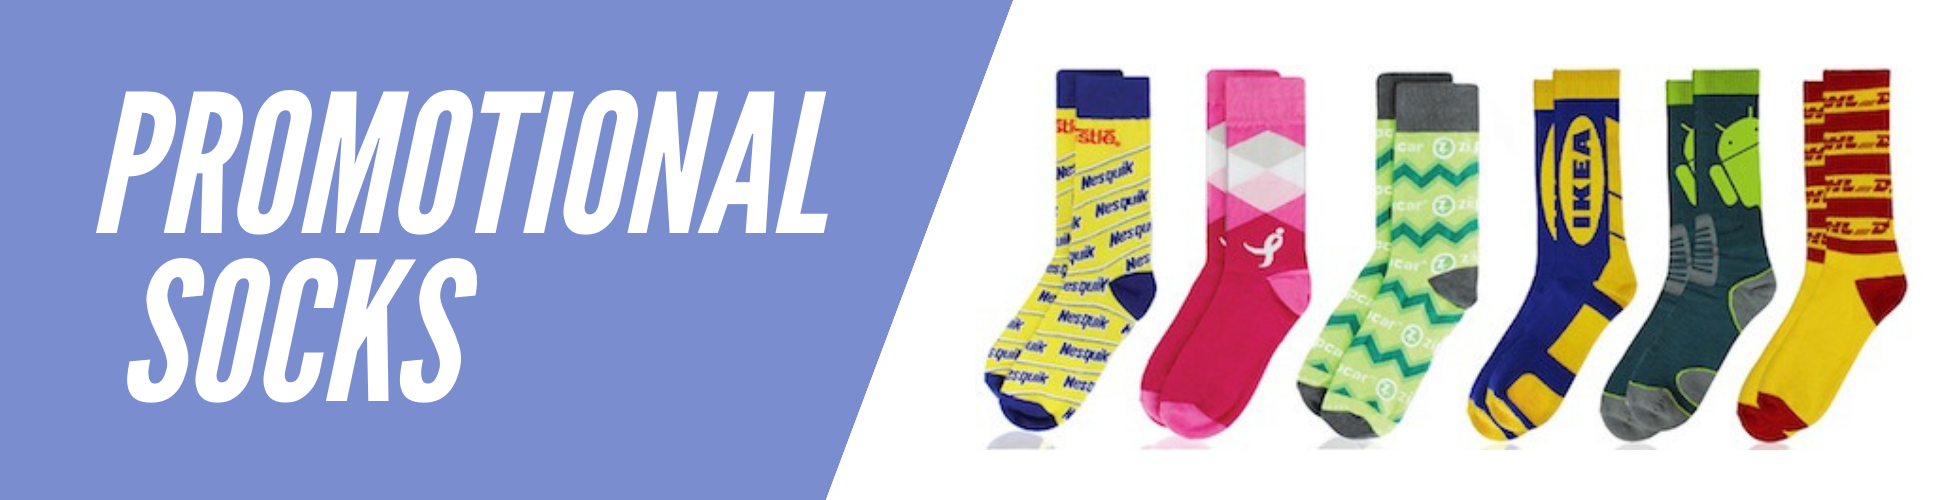 promotional-socks-banner-v2.png